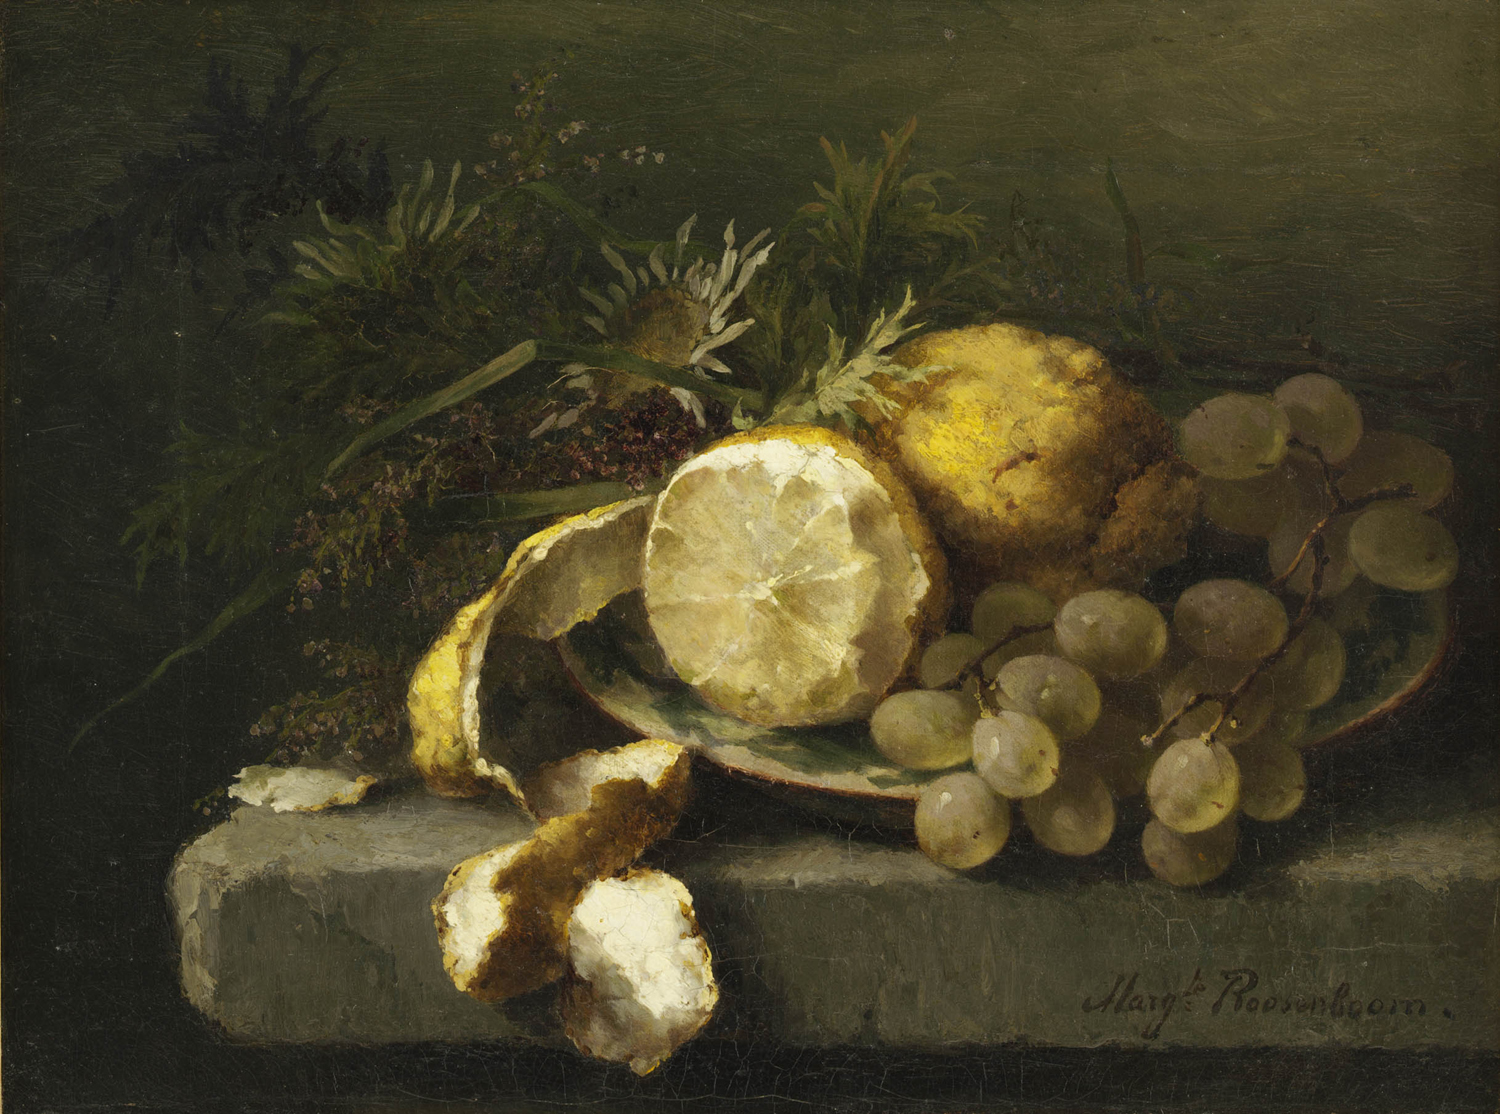 Margaretha Roosenboom | A still life with lemons and grapes | Kunsthandel Bies | Bies Gallery